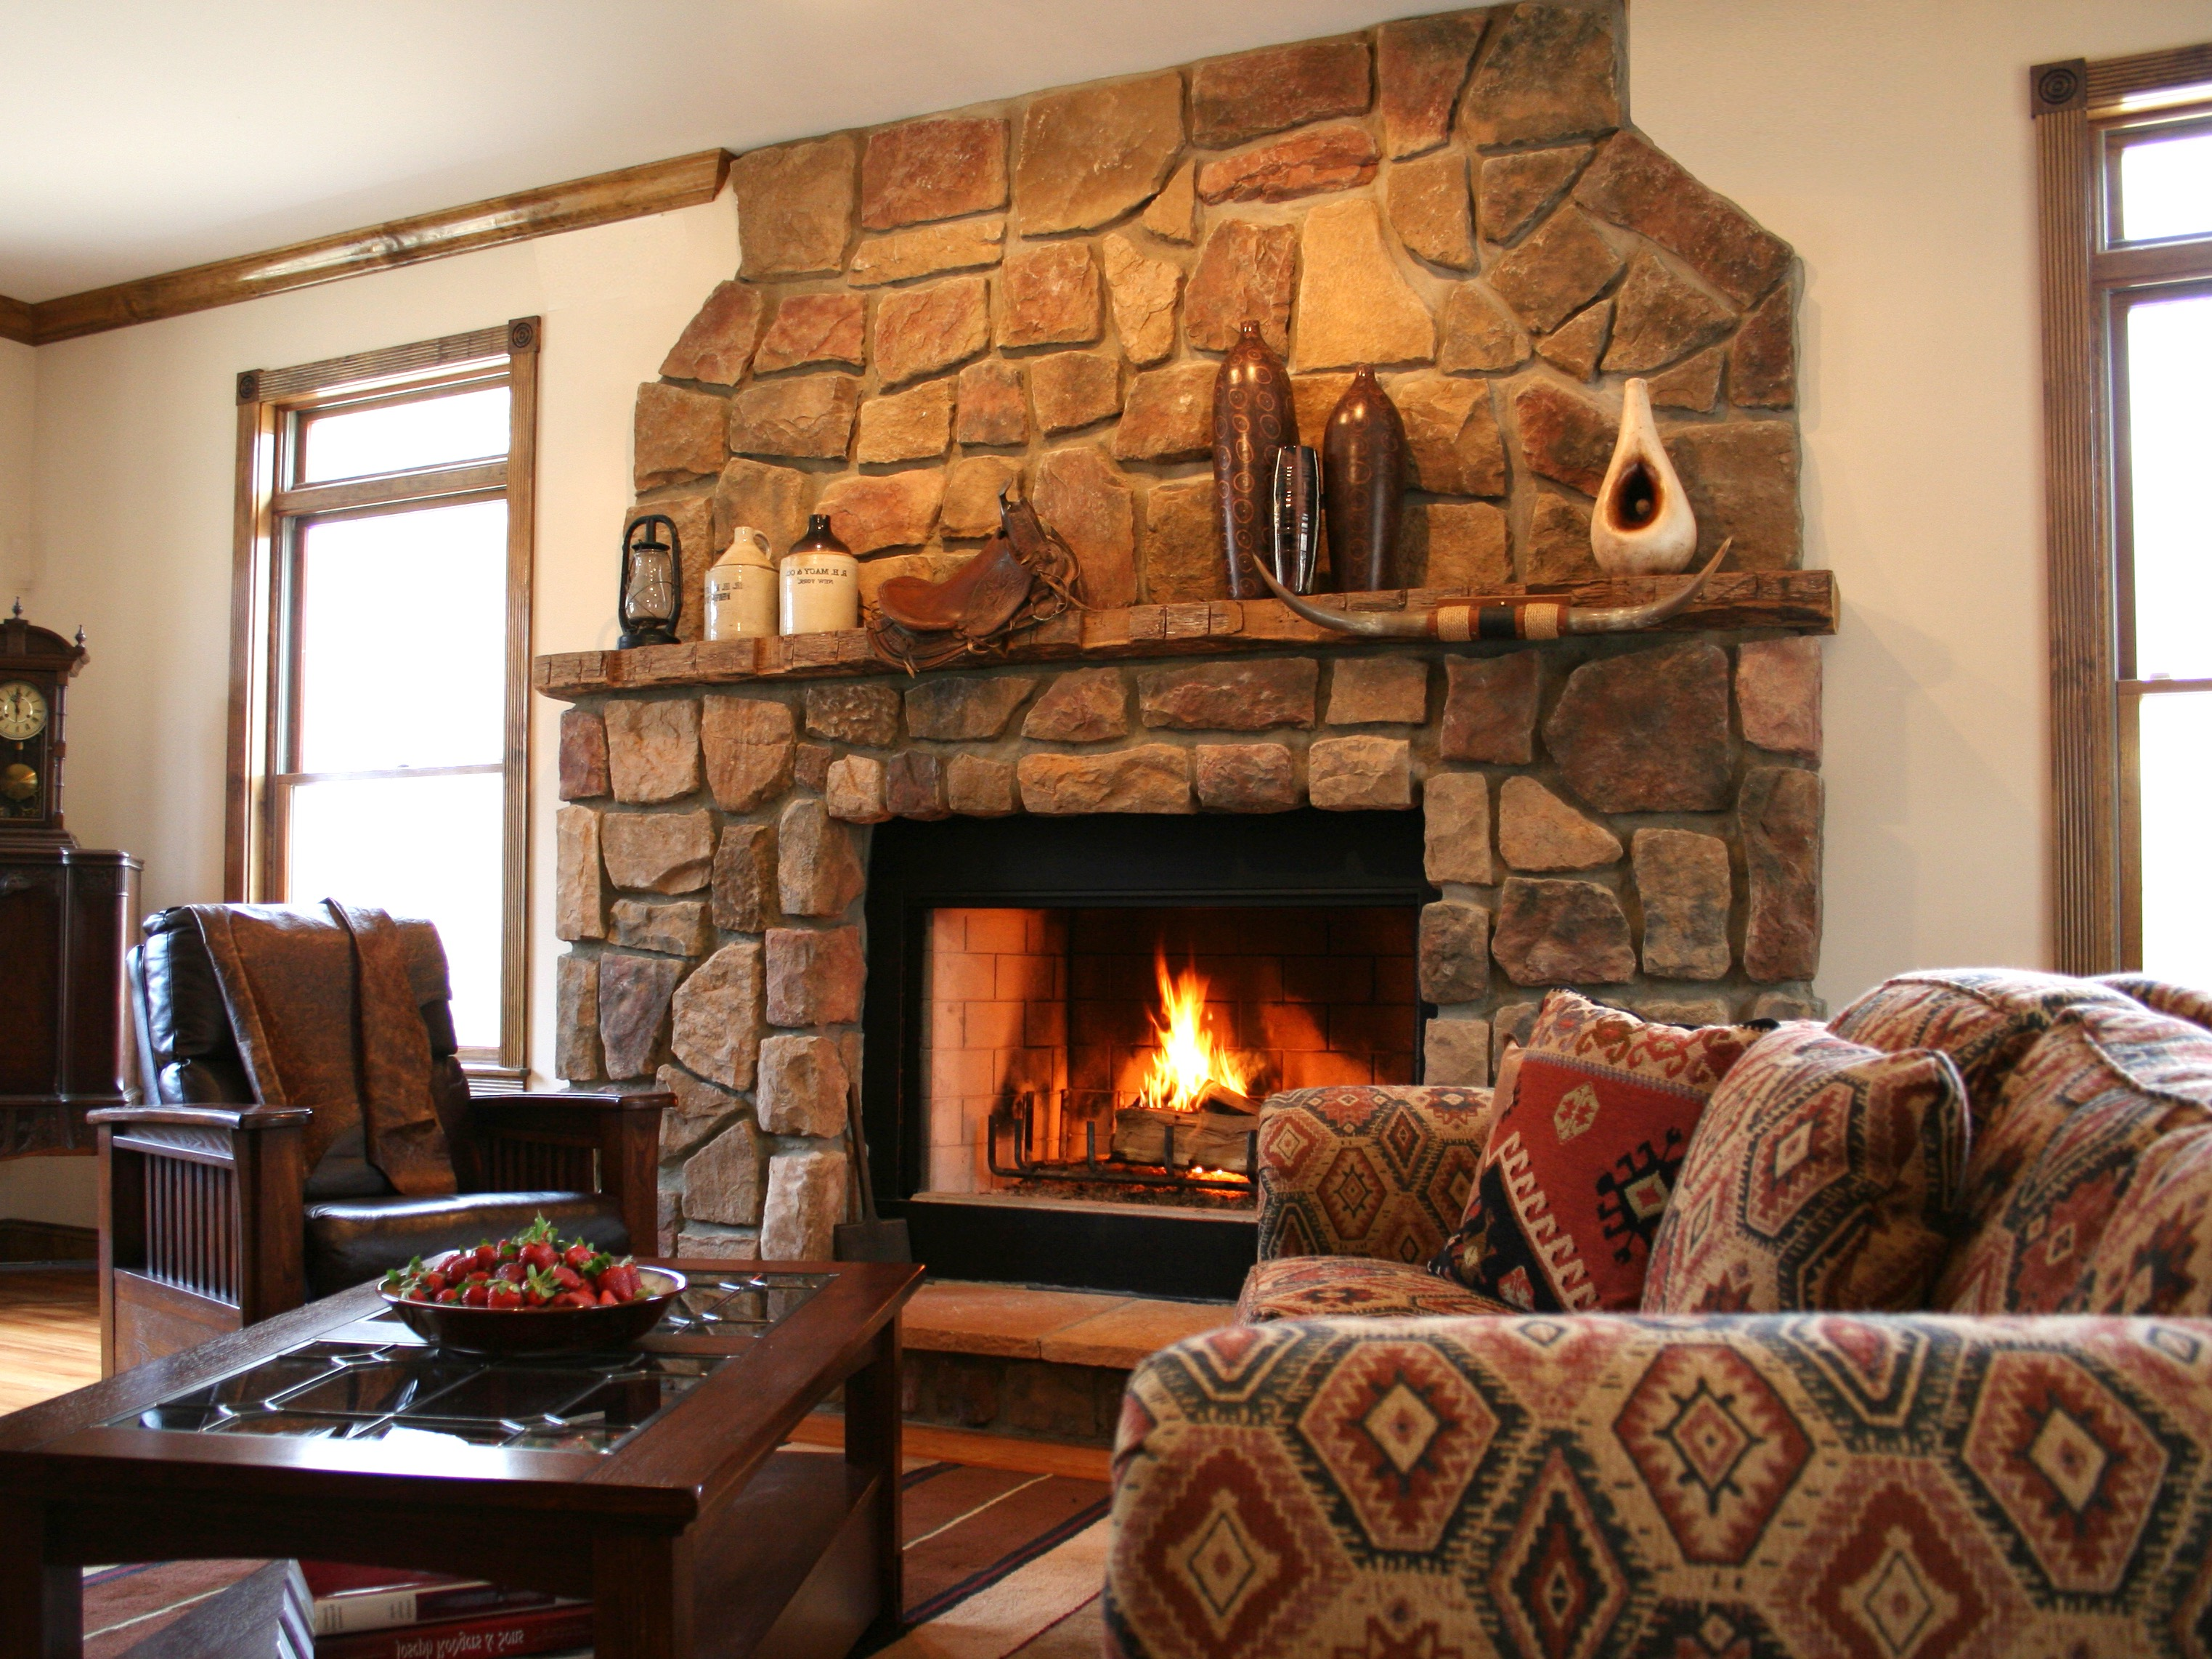 Rustic Western Living Room With Stone Fireplace (View 1 of 18)